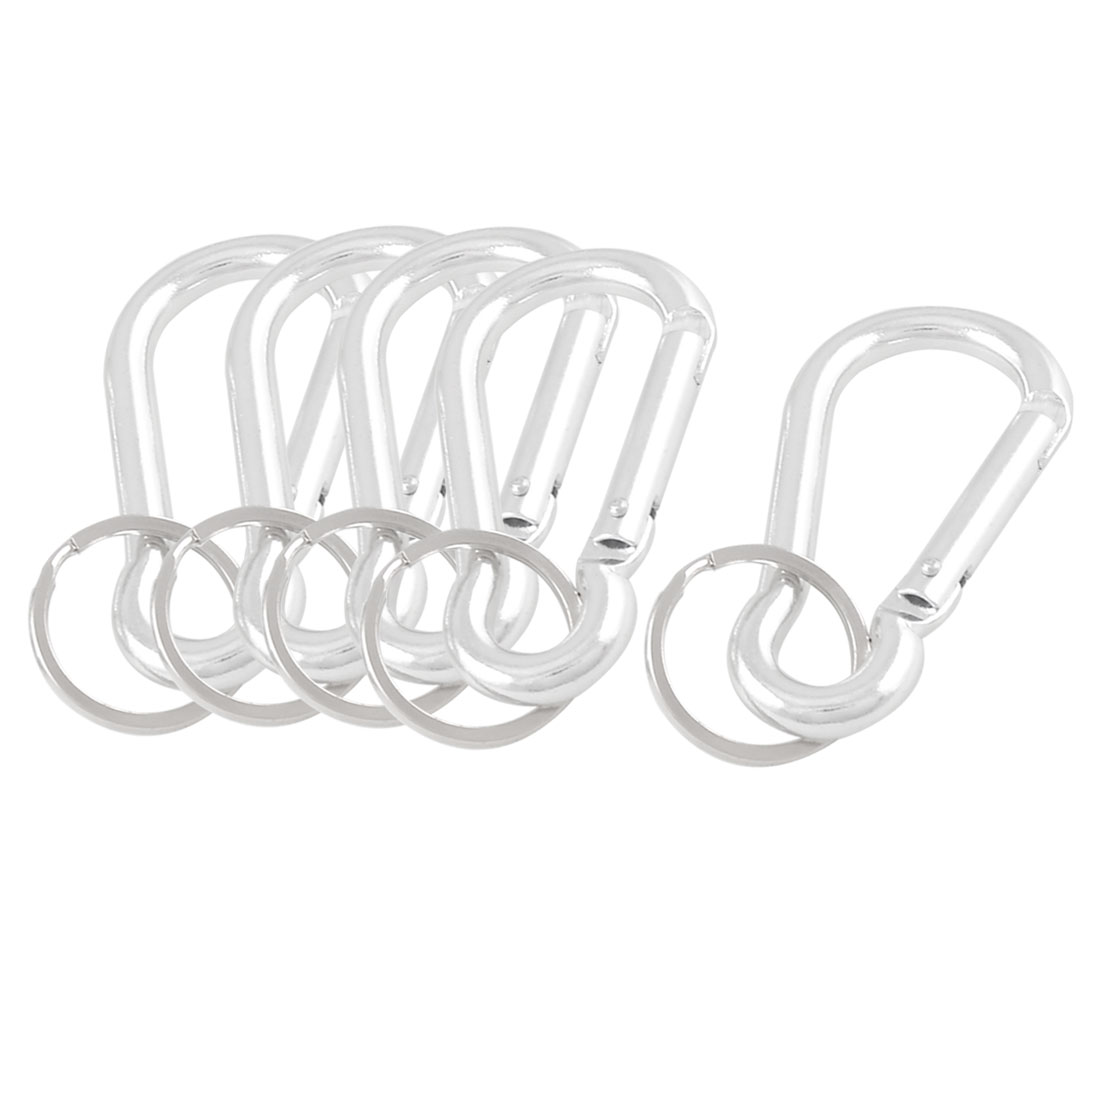 Silver Tone Aluminum Carabiner Key Ring for Camping 5 Pcs